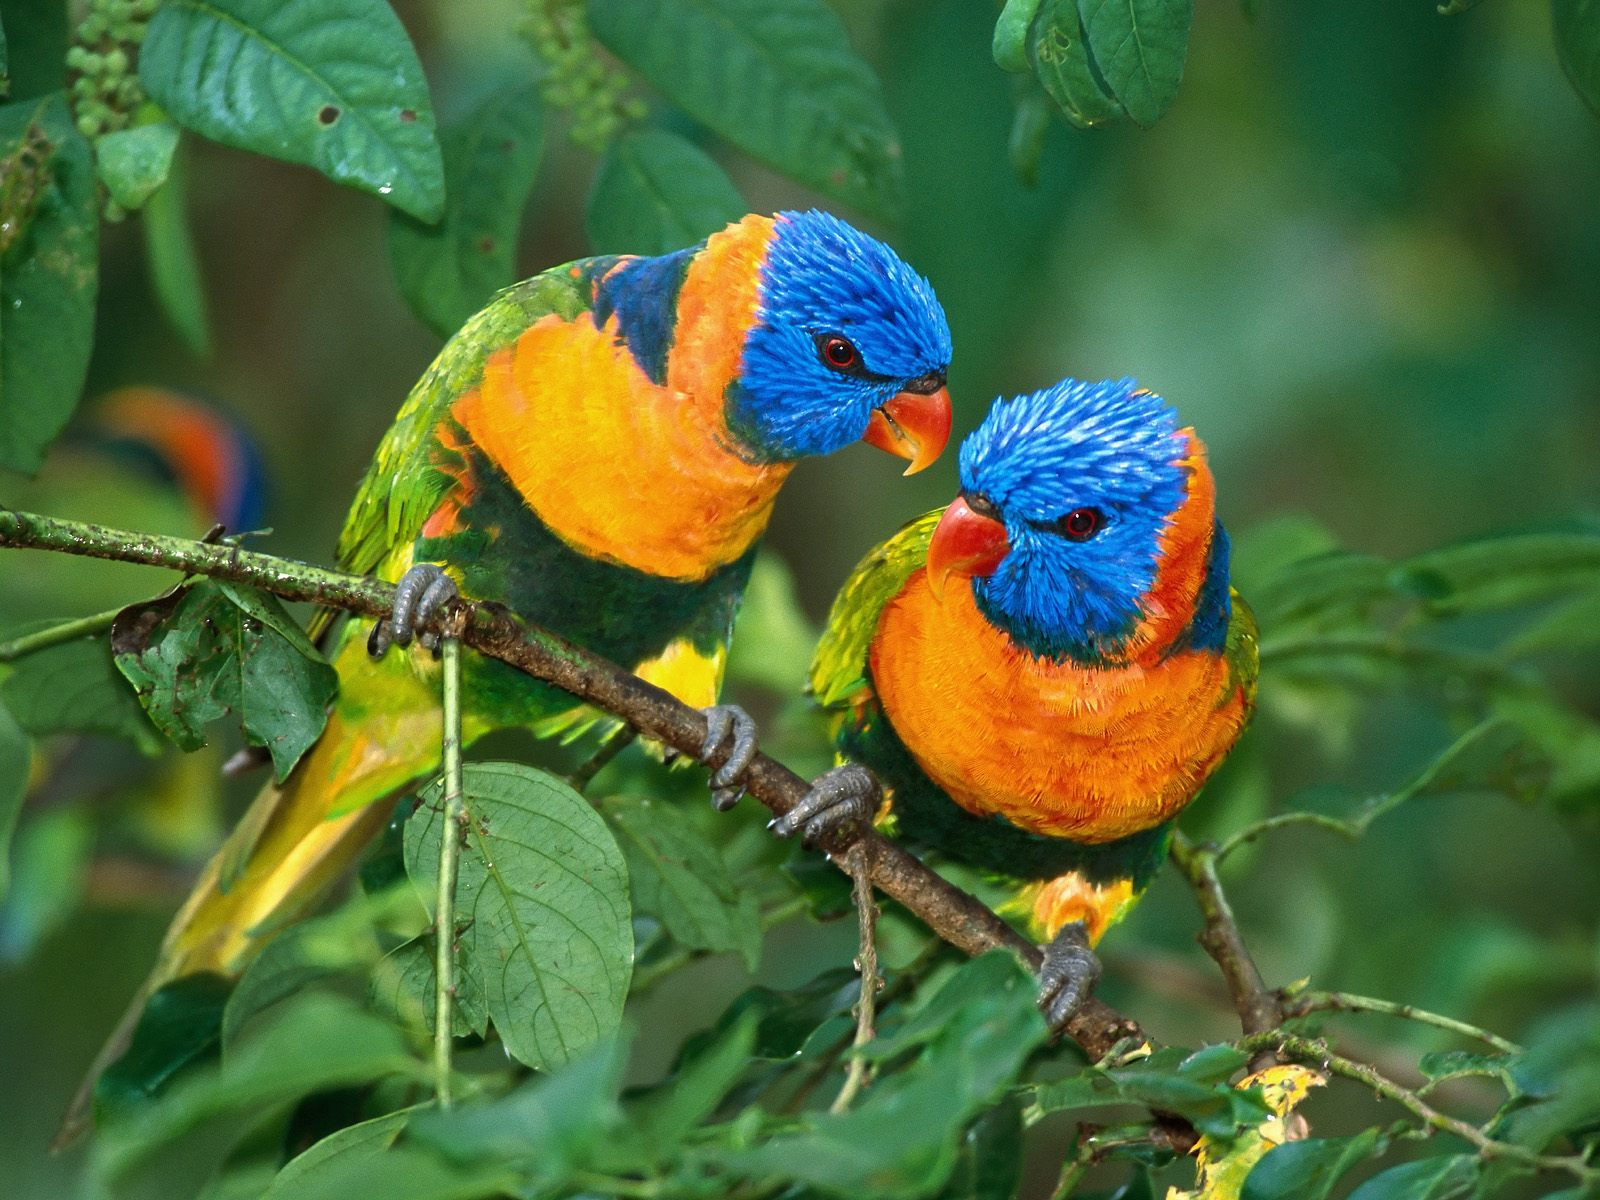 bird birds wallpapers nature background pretty tweety parrot parrots colorful backgrounds brids birdie desktop lovebirds cute pair lovebird parakeets colourful